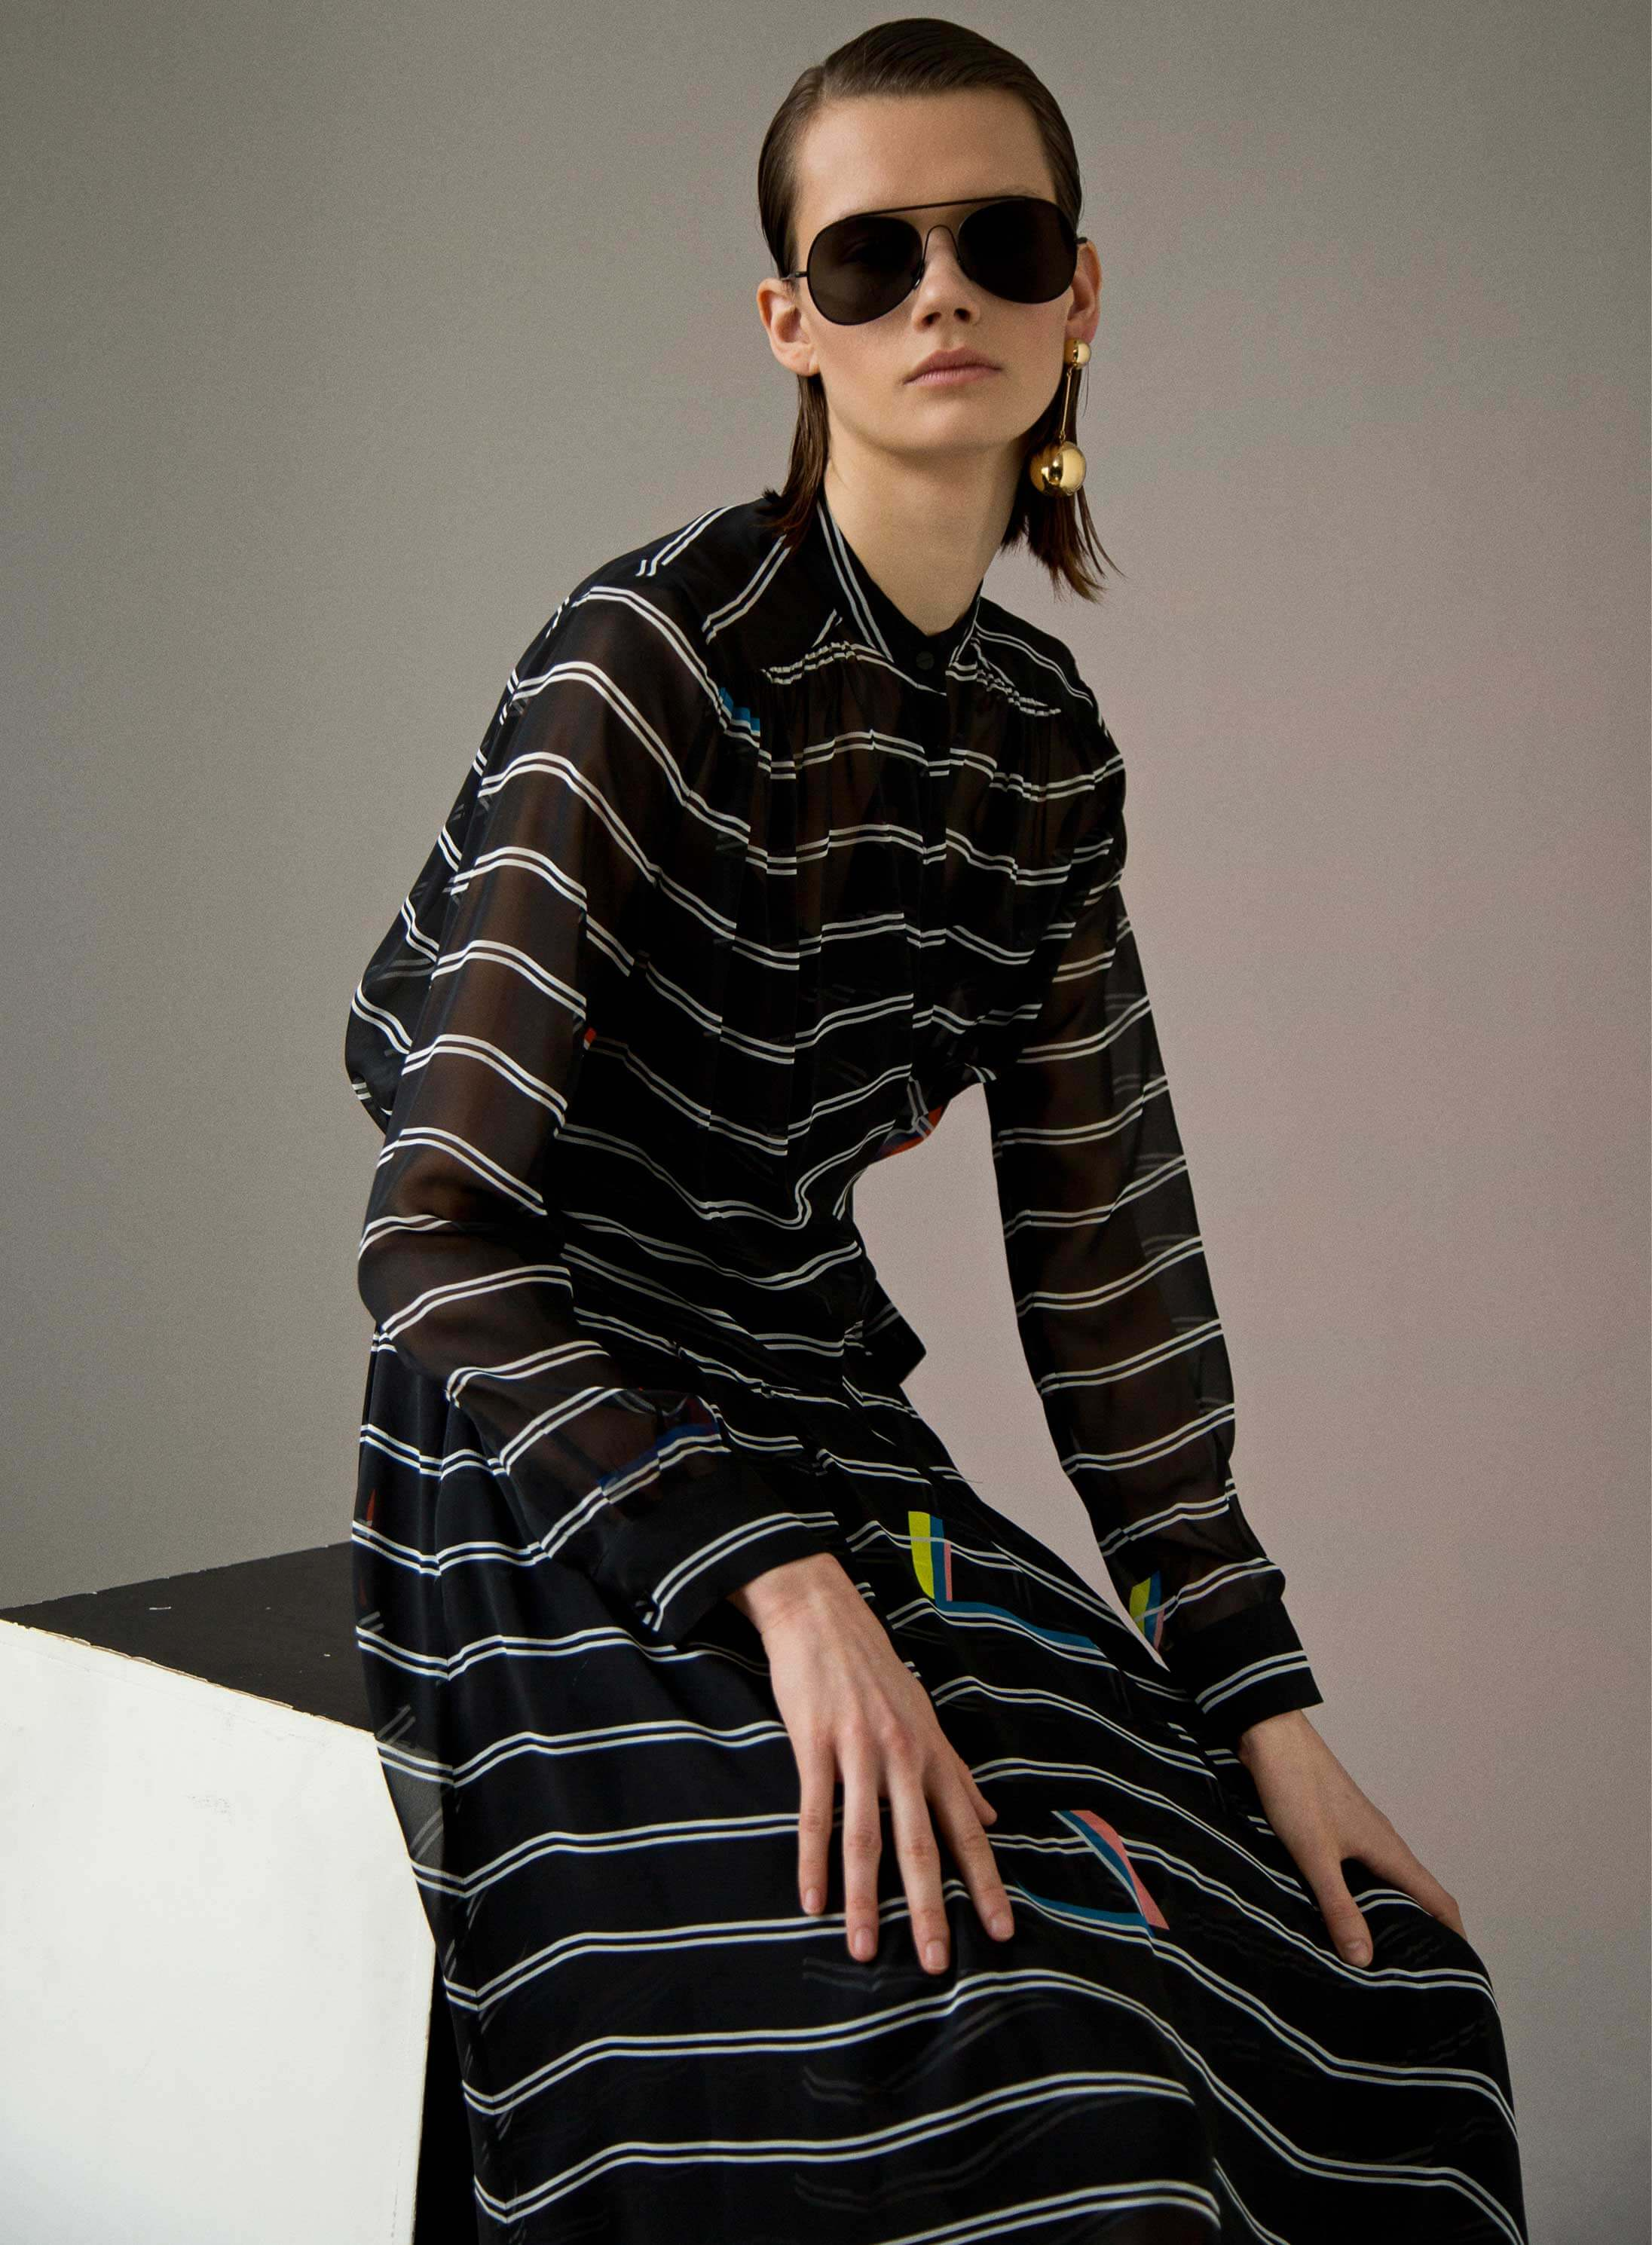 Directional Yet Demure Clothing For The Cool Modern Woman: In Focus: Preen By Thornton Bregazzi